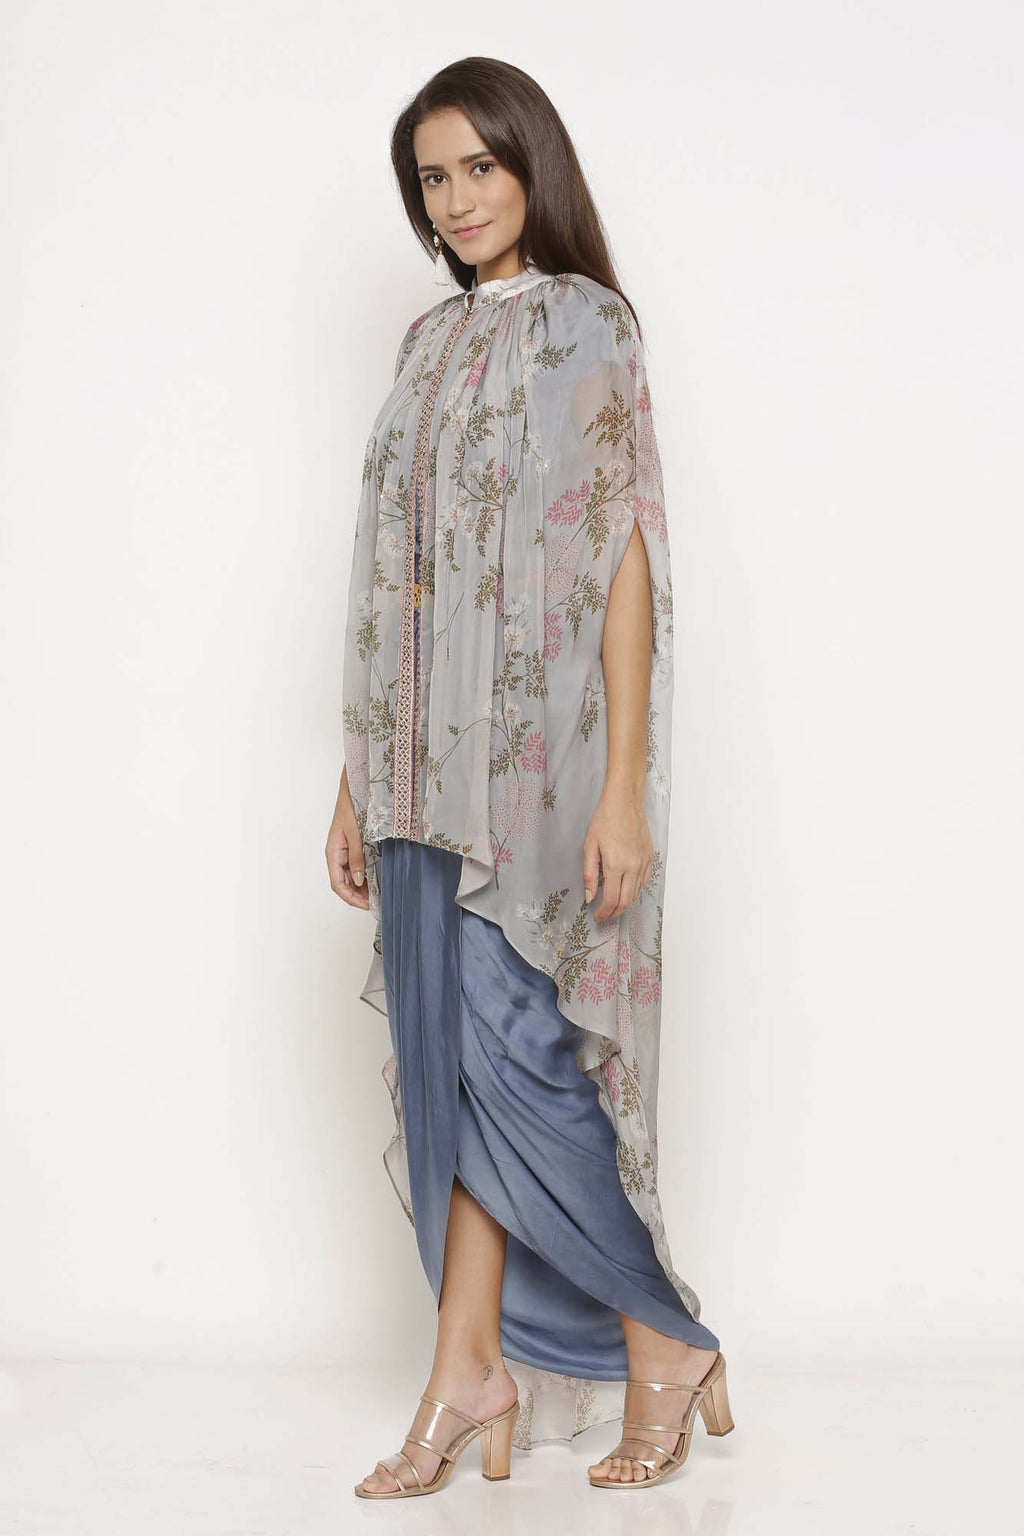 Ice Blue Printed Drape Dress with Cape - Riviera Closet